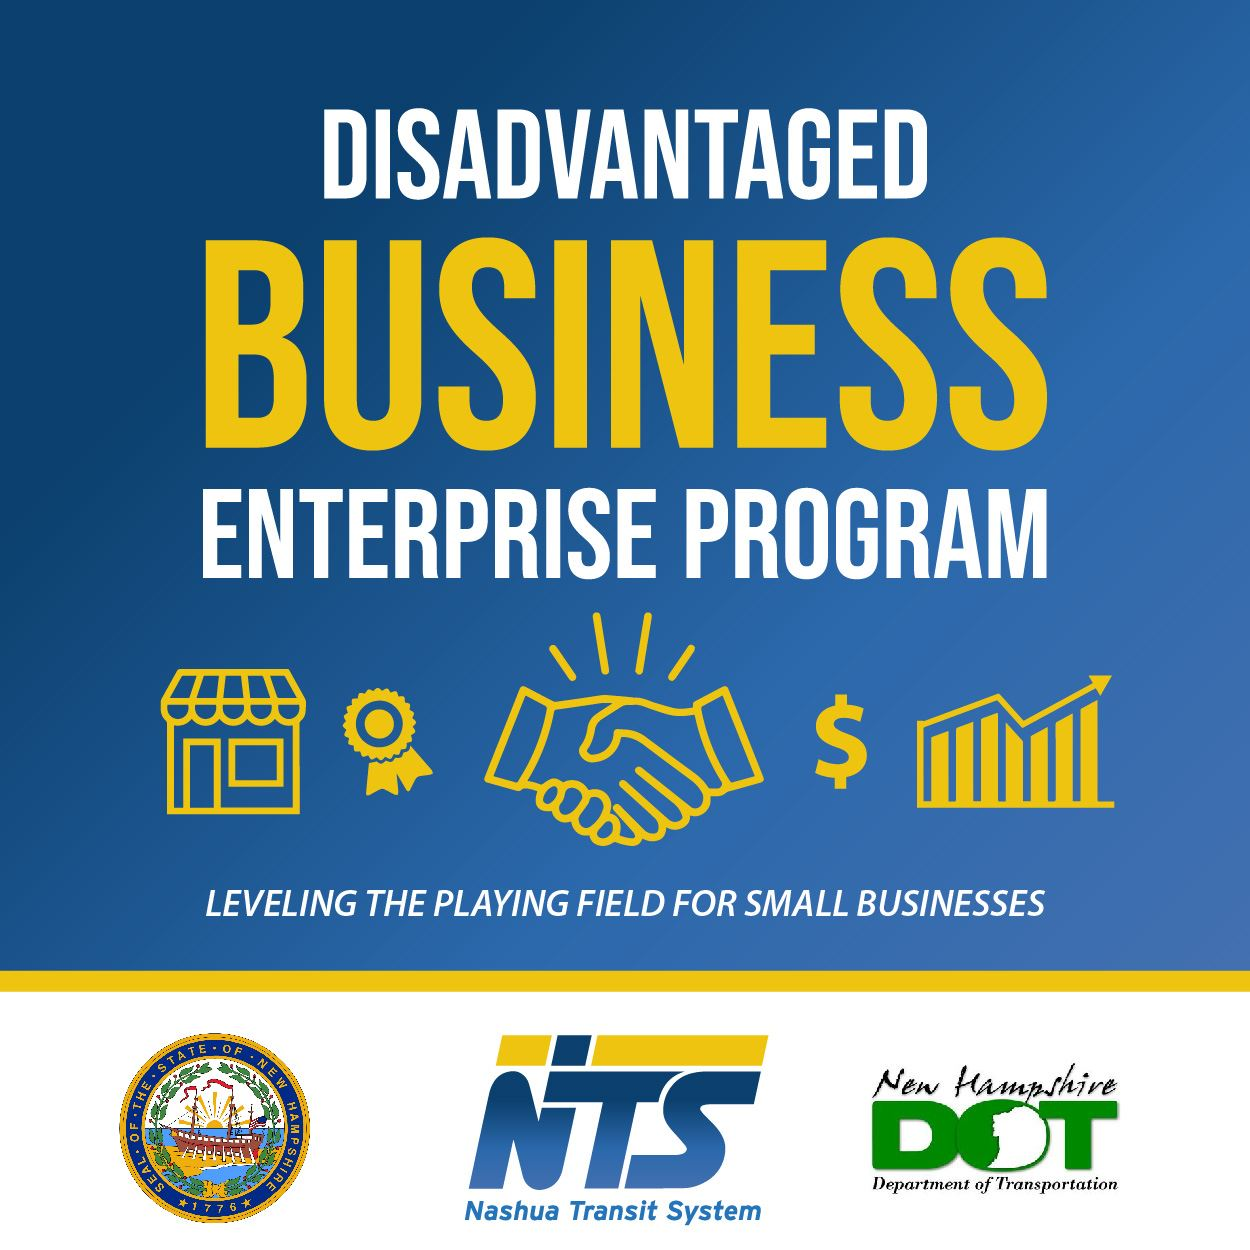 DBE Disadvantaged Business Enterprise Program ad